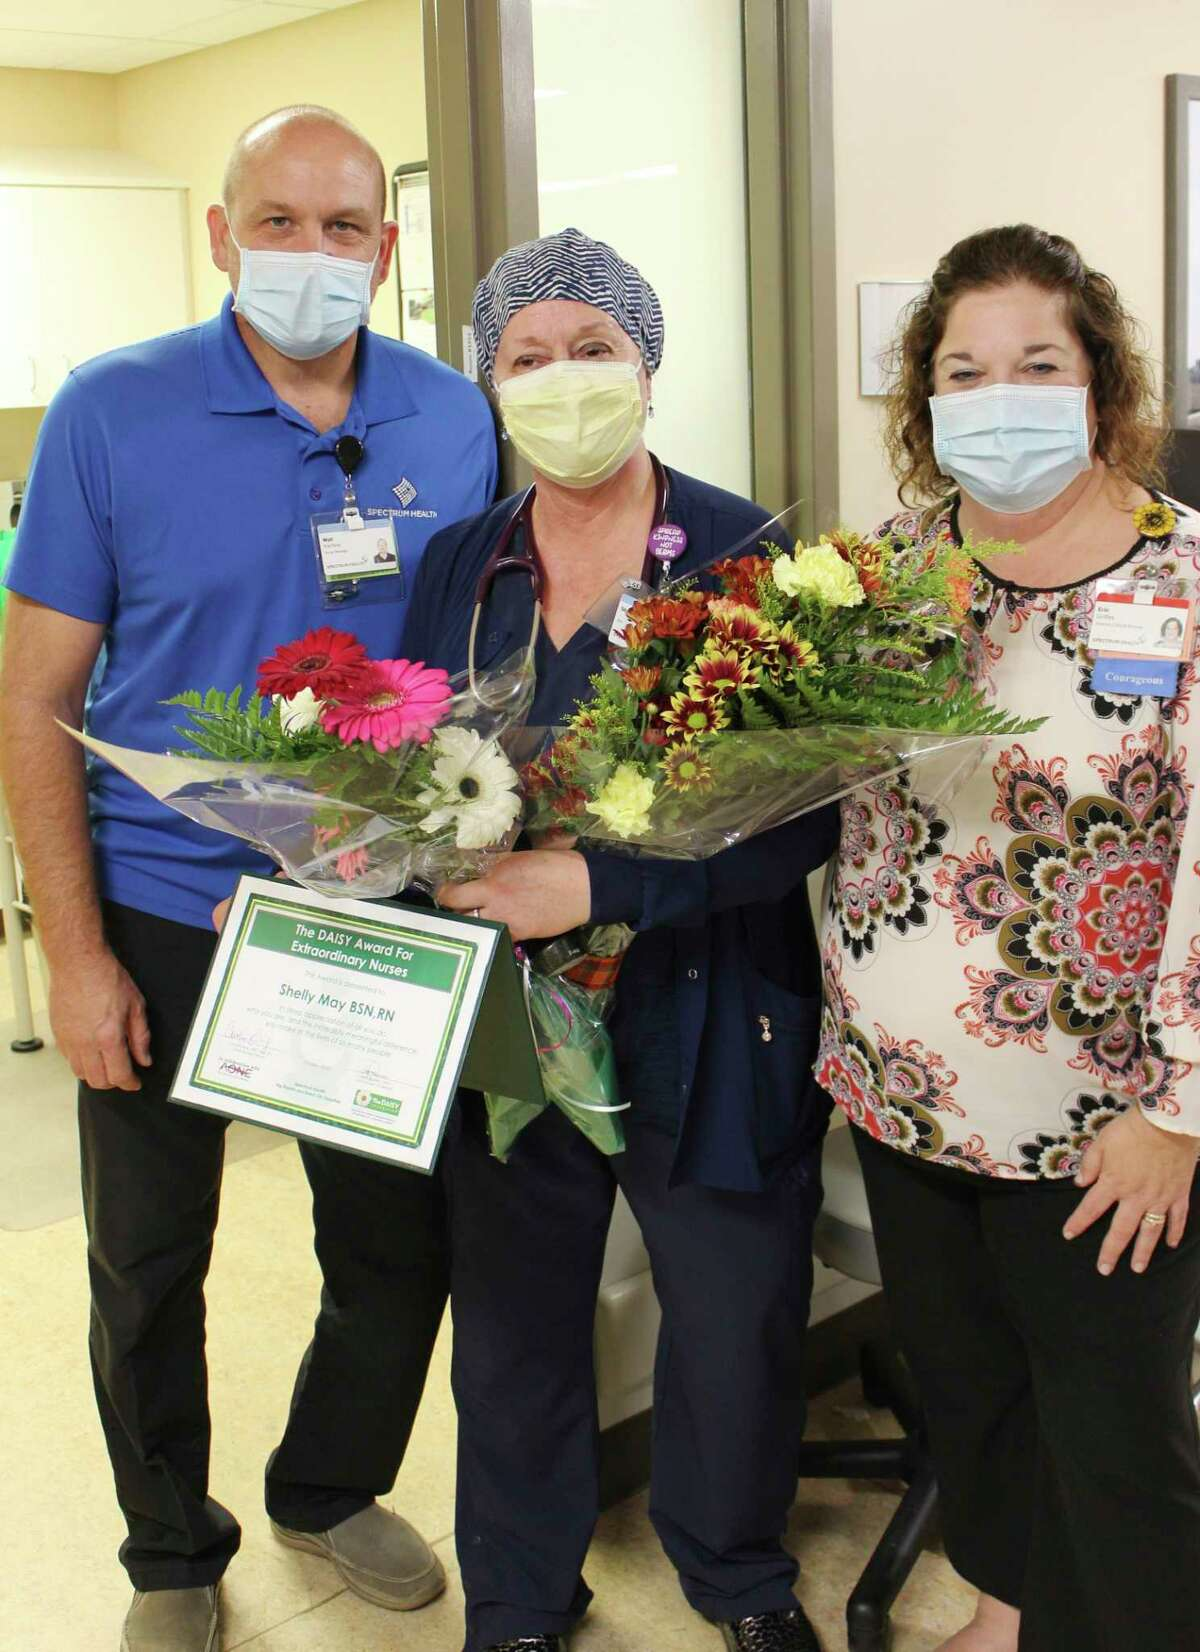 Shelly May, center, was recognized with a DAISY Award for her compassionate care shown to a recent patient needing emergency care. Shown with May are Walt Hartline, nurse manager of the Big Rapids Hospital emergency department and Erin Griffes, director of clinical nursing for Big Rapids and Reed City Hospitals. (Courtesy photo)